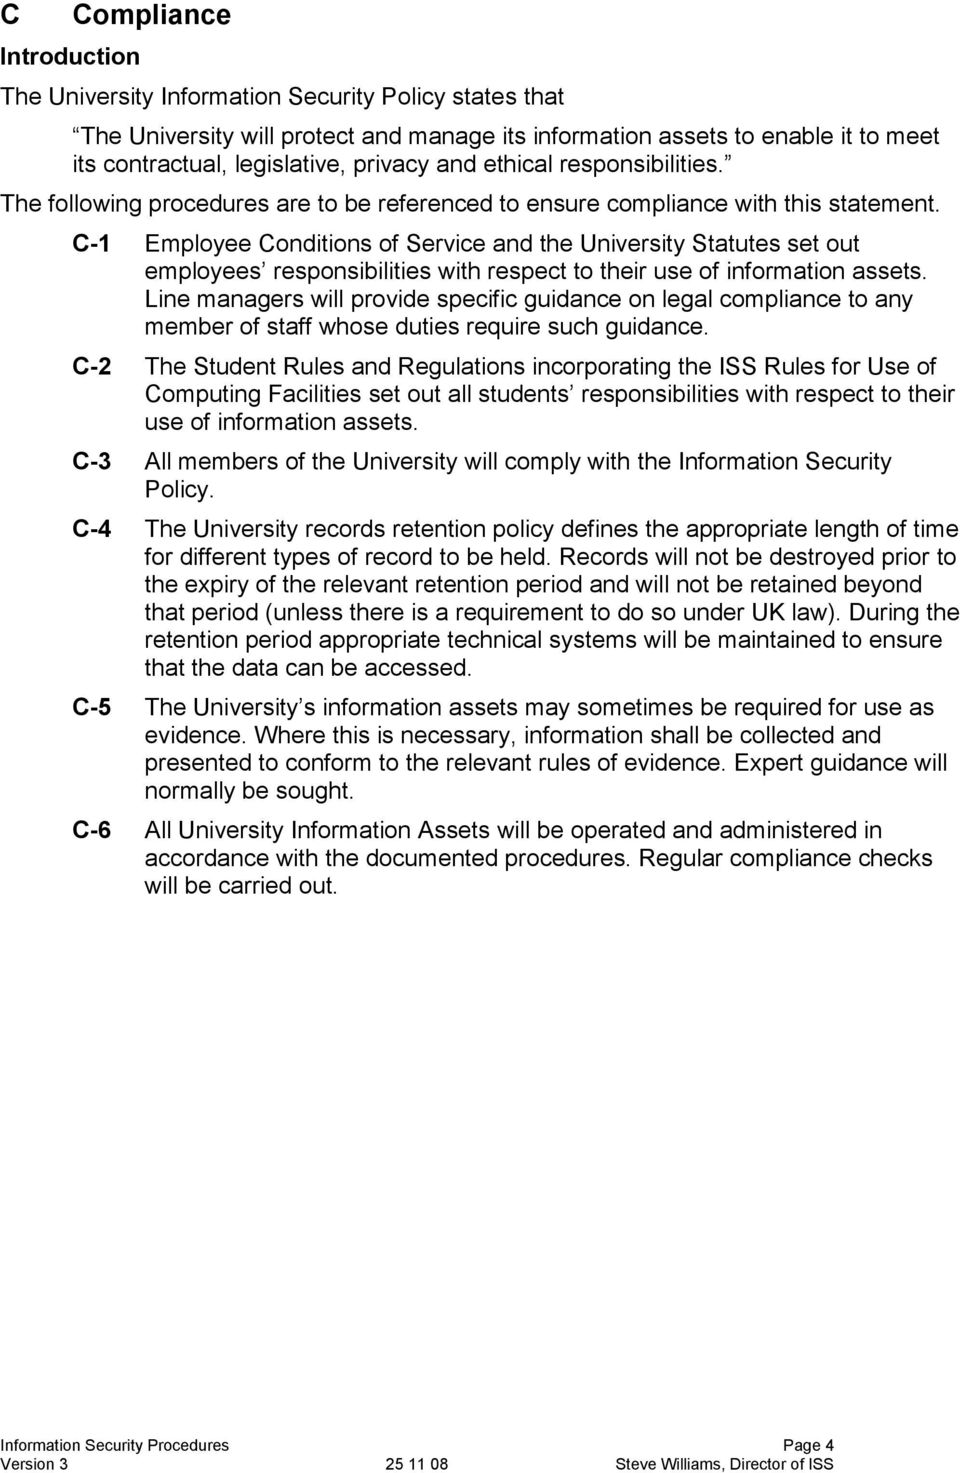 C-1 Employee Conditions of Service and the University Statutes set out employees responsibilities with respect to their use of information assets.